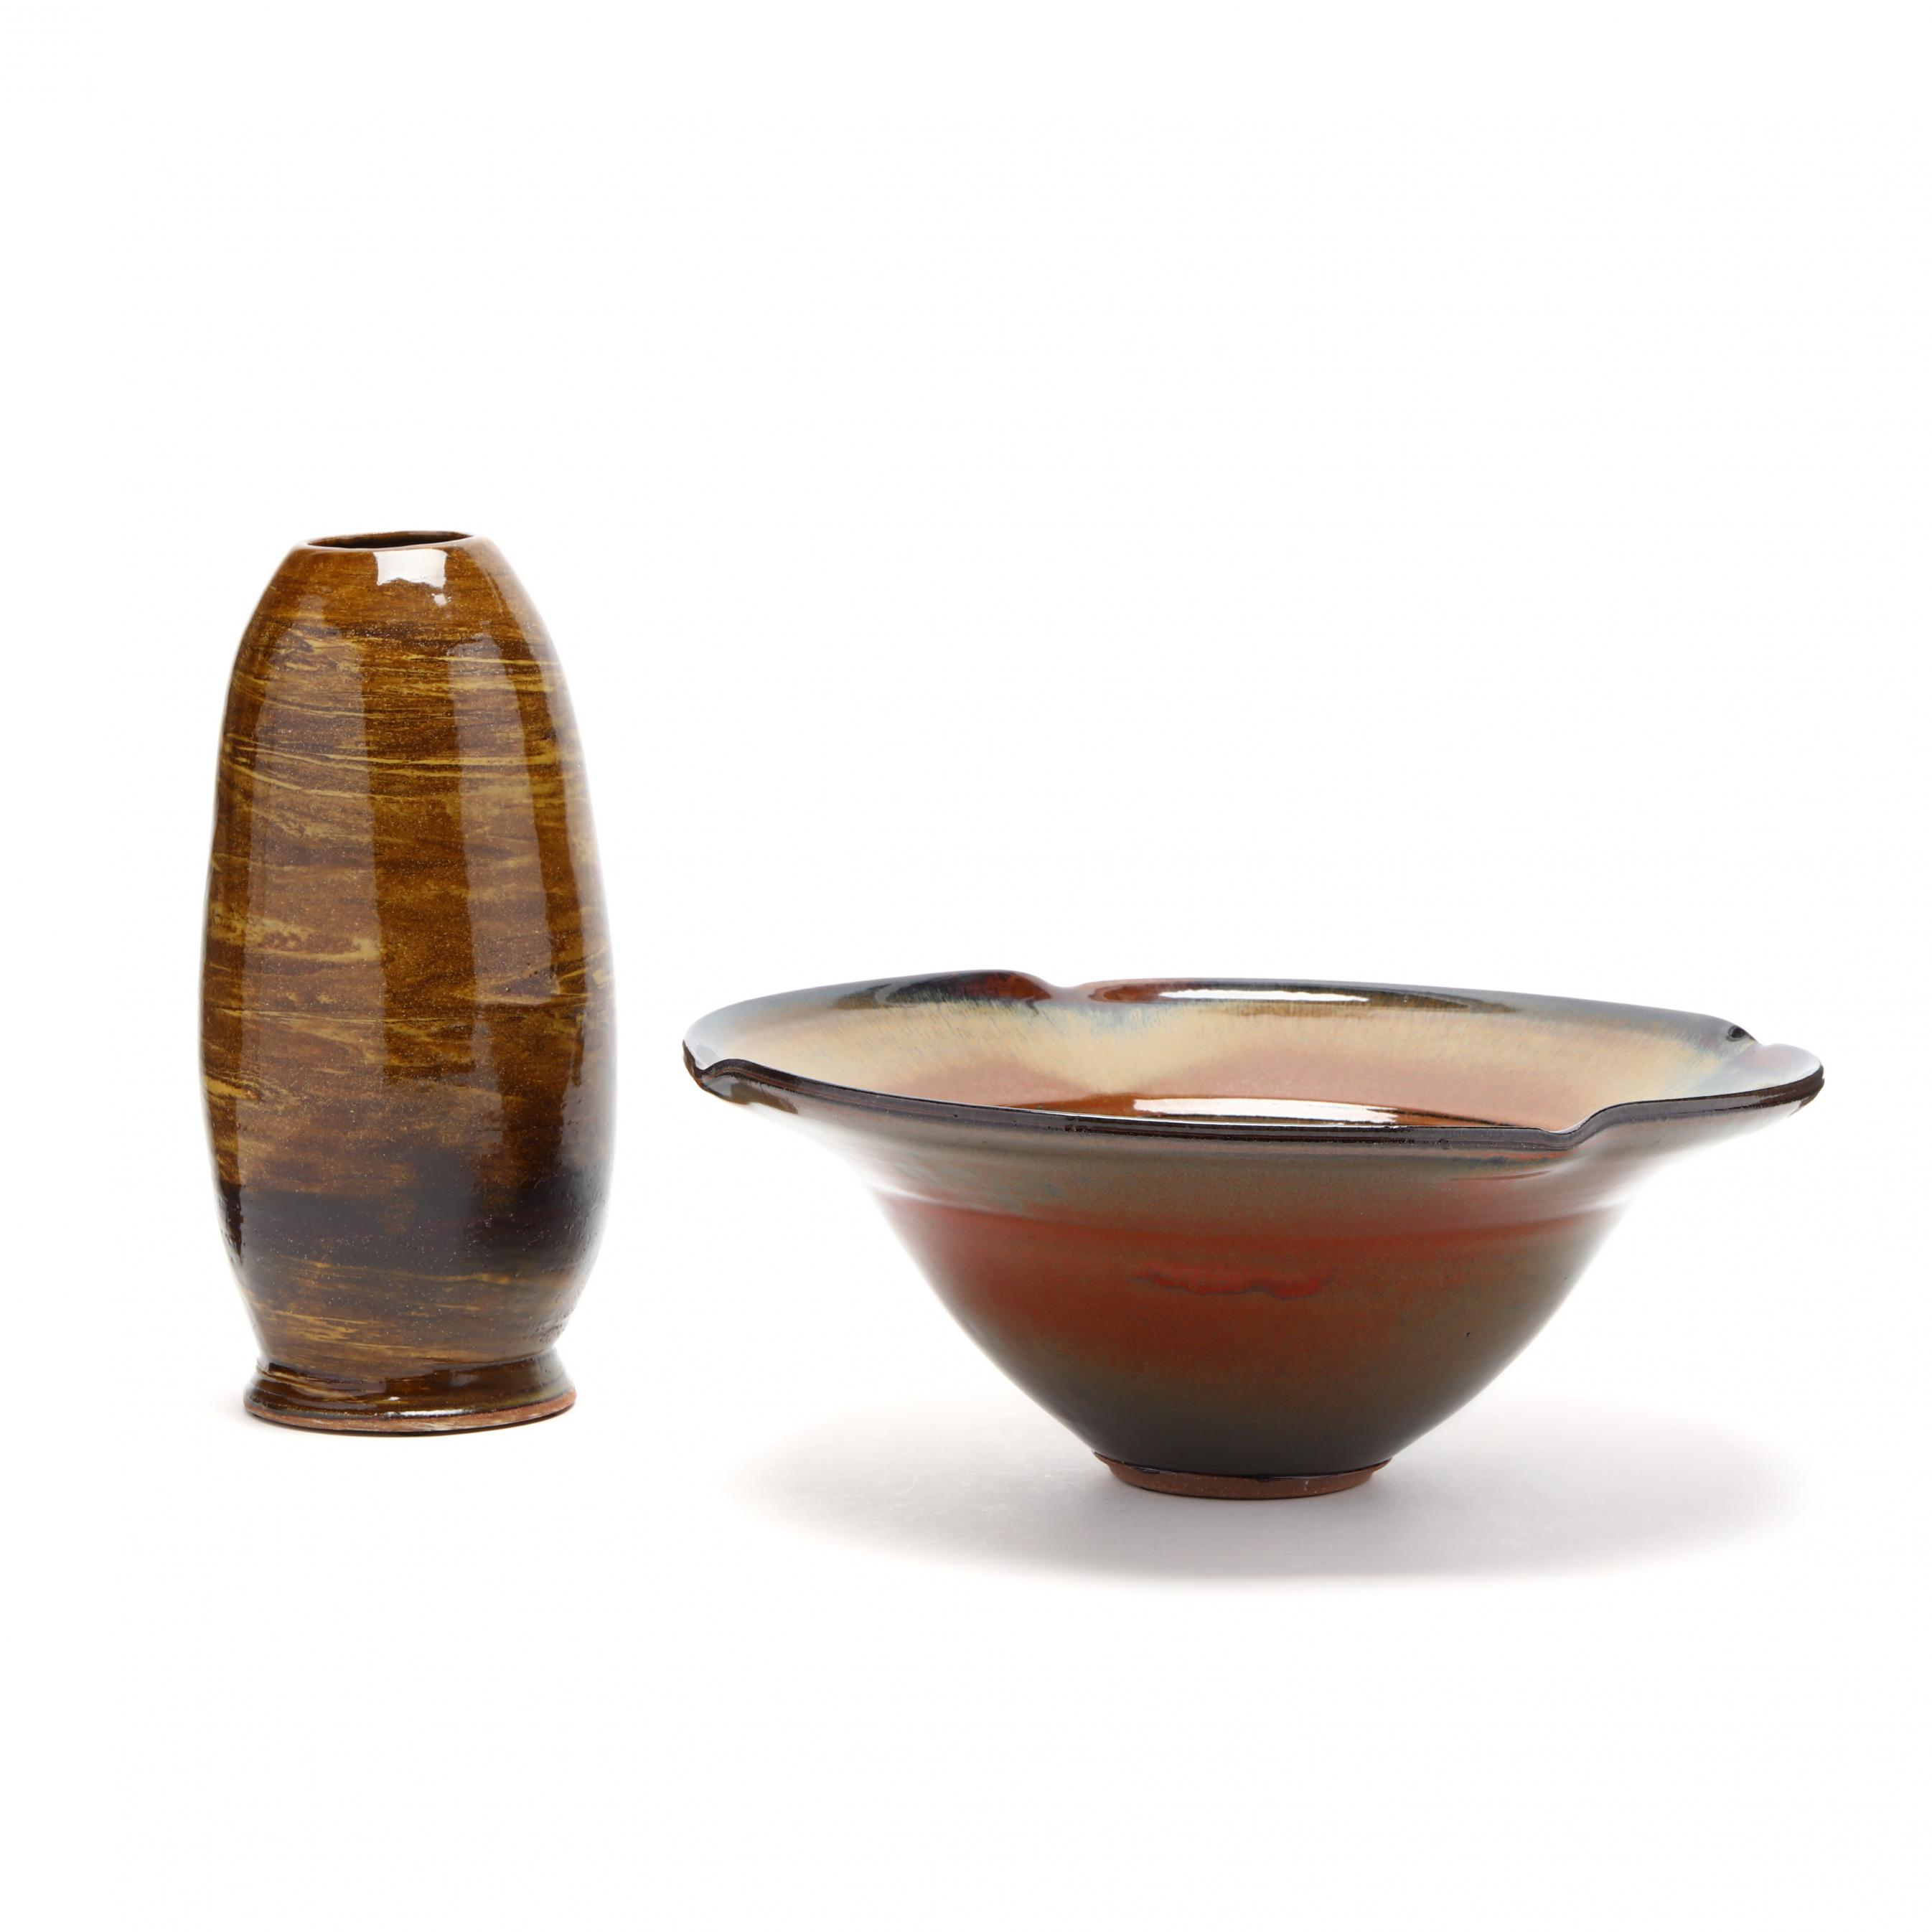 sc-studio-pottery-two-works-by-dale-duncan